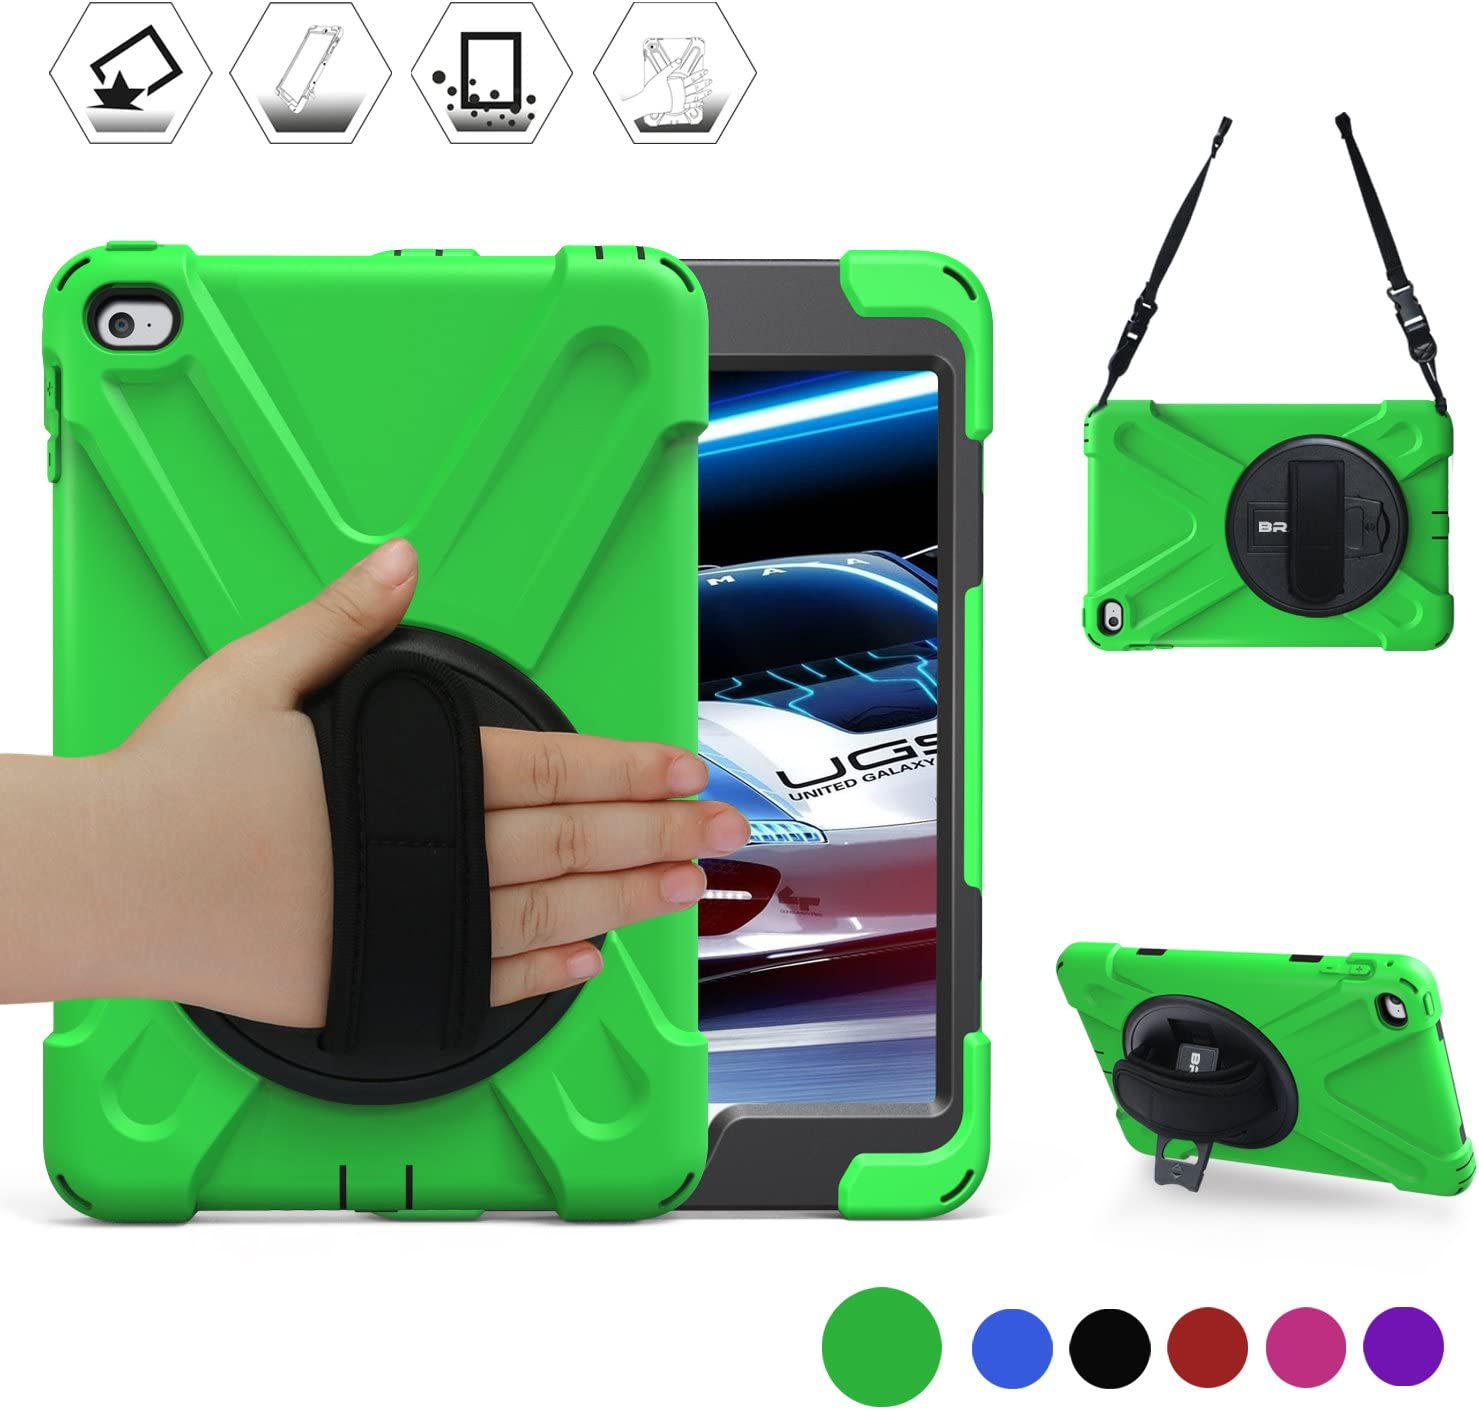 BRAECN iPad Mini4 Shockproof Case Three Layer Drop Protection Rugged Protective Heavy Duty for iPad Mini 5 Case with a 360 Degree Swivel Stand/Hand Strap/Shoulder Strap for iPad Mini 4/5 Case(Green